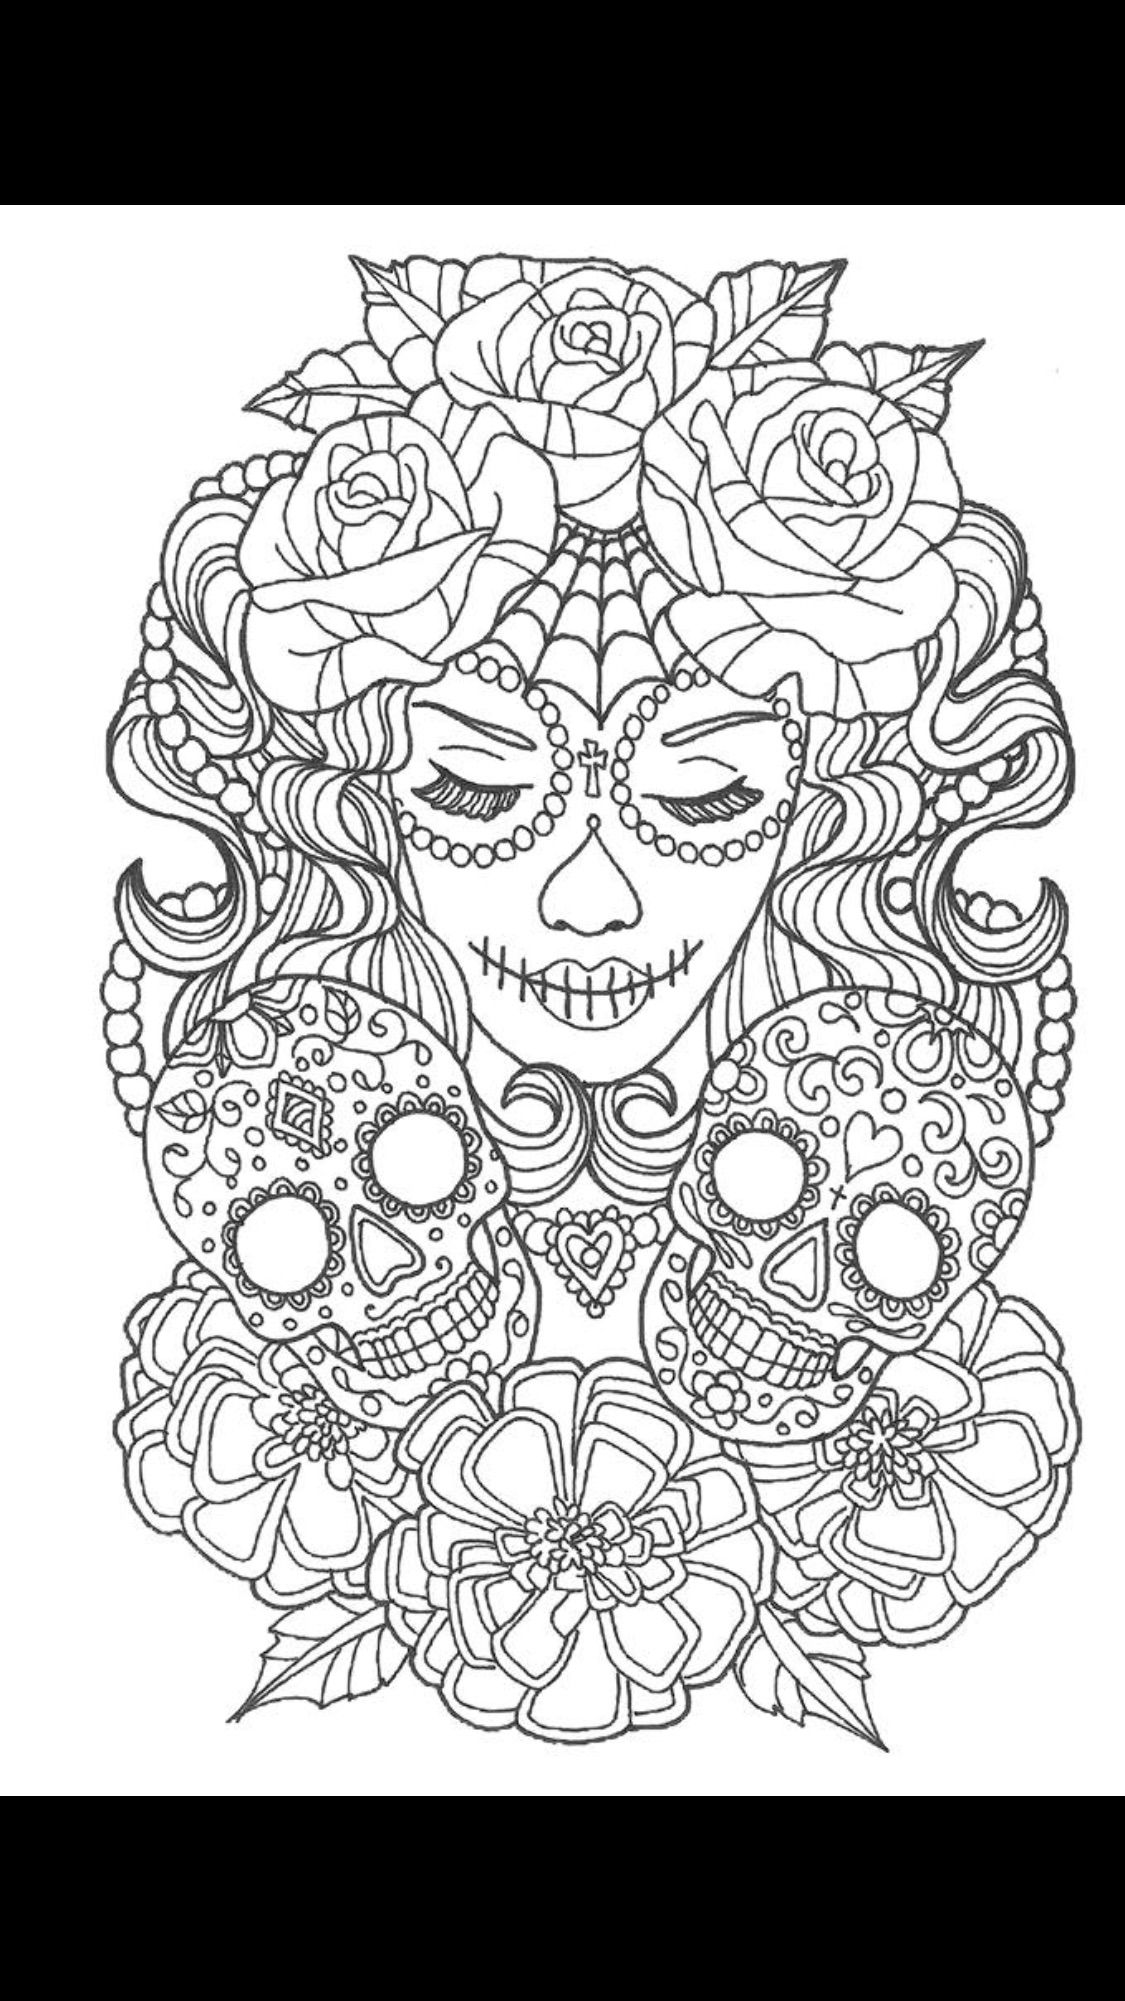 Paint Brush Coloring Page Jpg 481 640 Pixels Coloring Pages